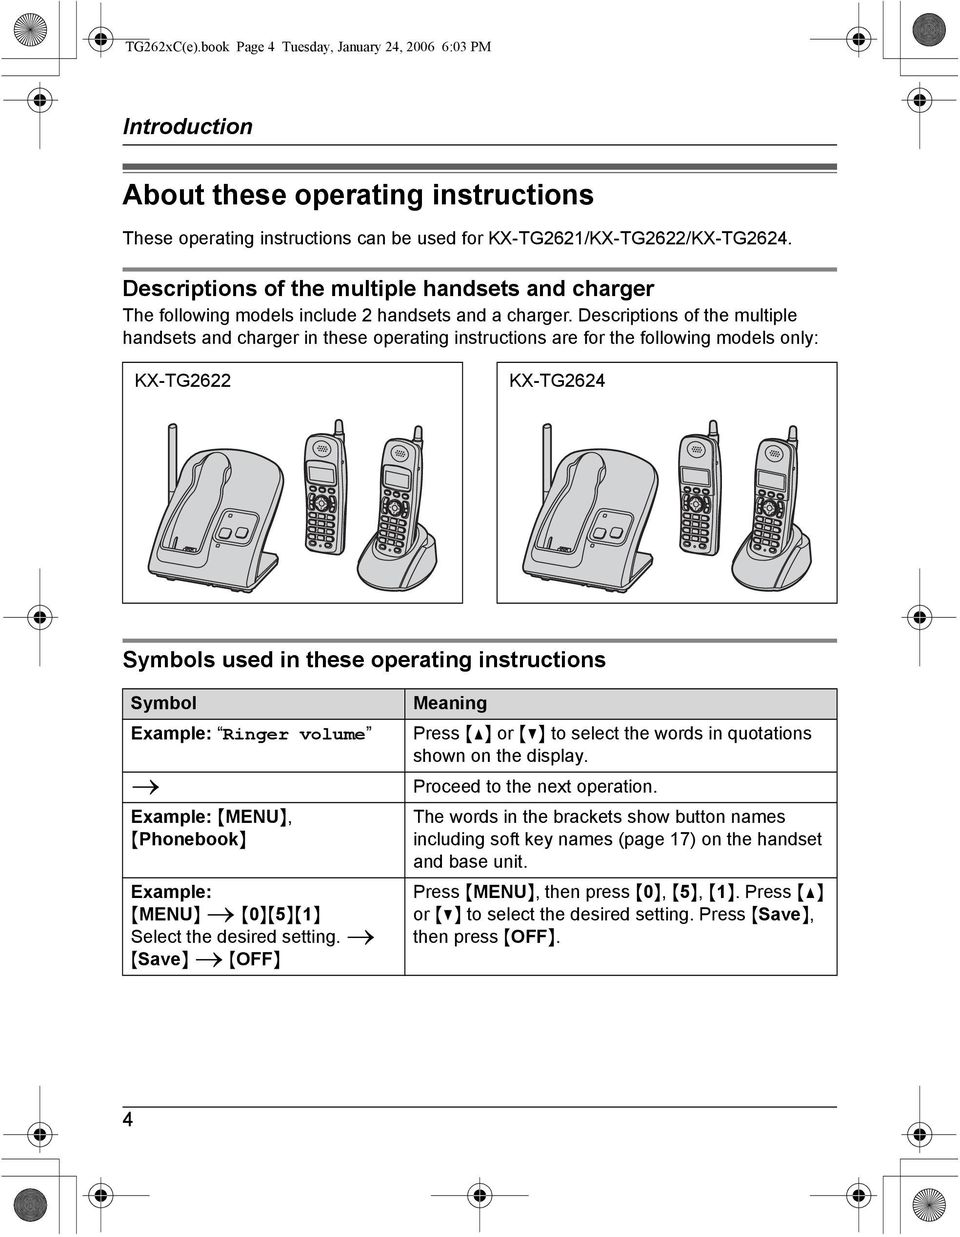 Descriptions of the multiple handsets and charger in these operating instructions are for the following models only: KX-TG2622 KX-TG2624 Symbols used in these operating instructions Symbol Example: